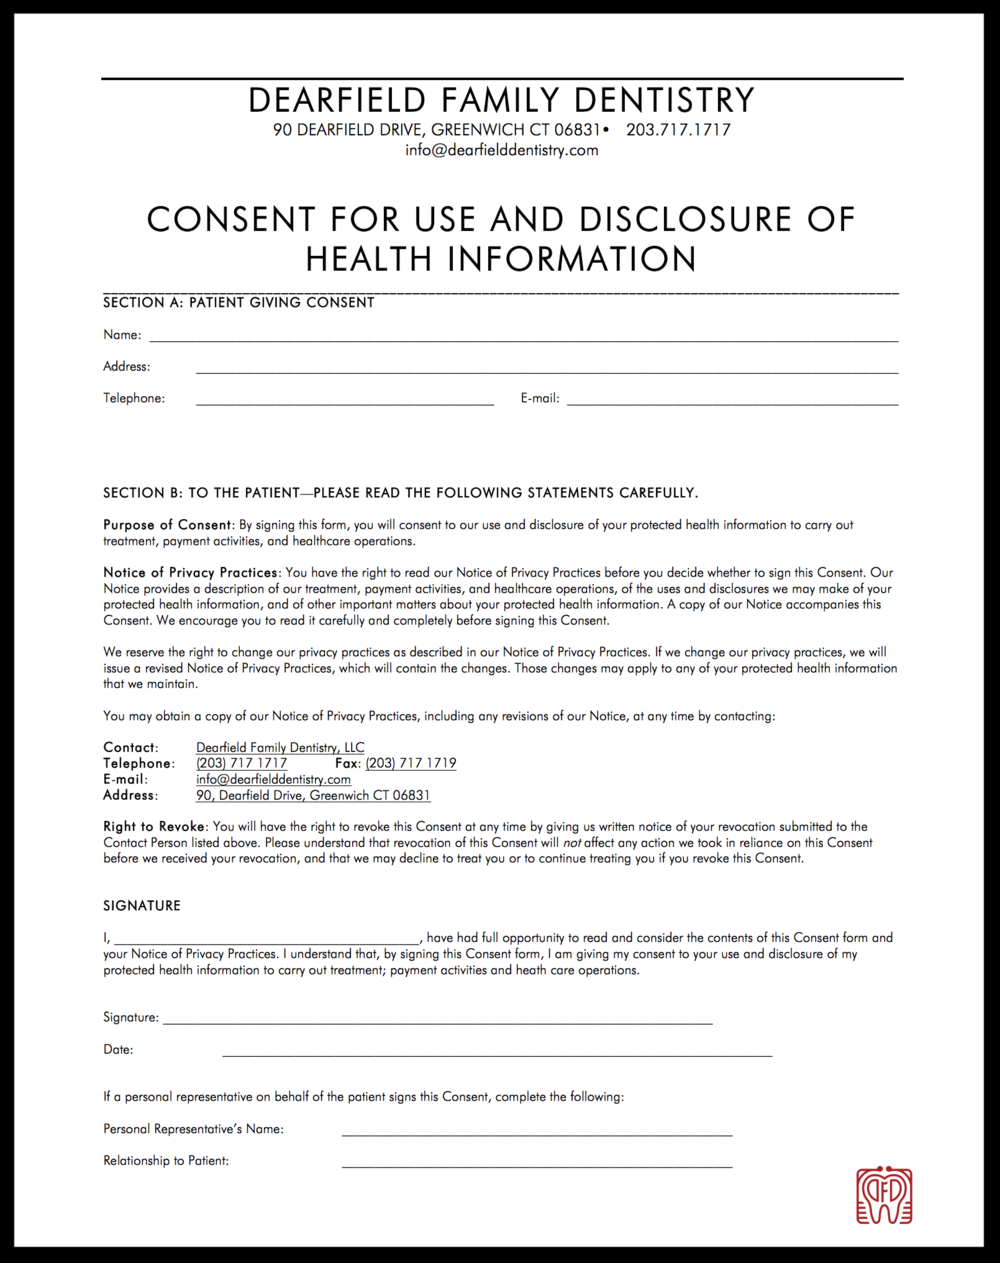 Patient forms dearfield family dentistry hipaa form altavistaventures Choice Image